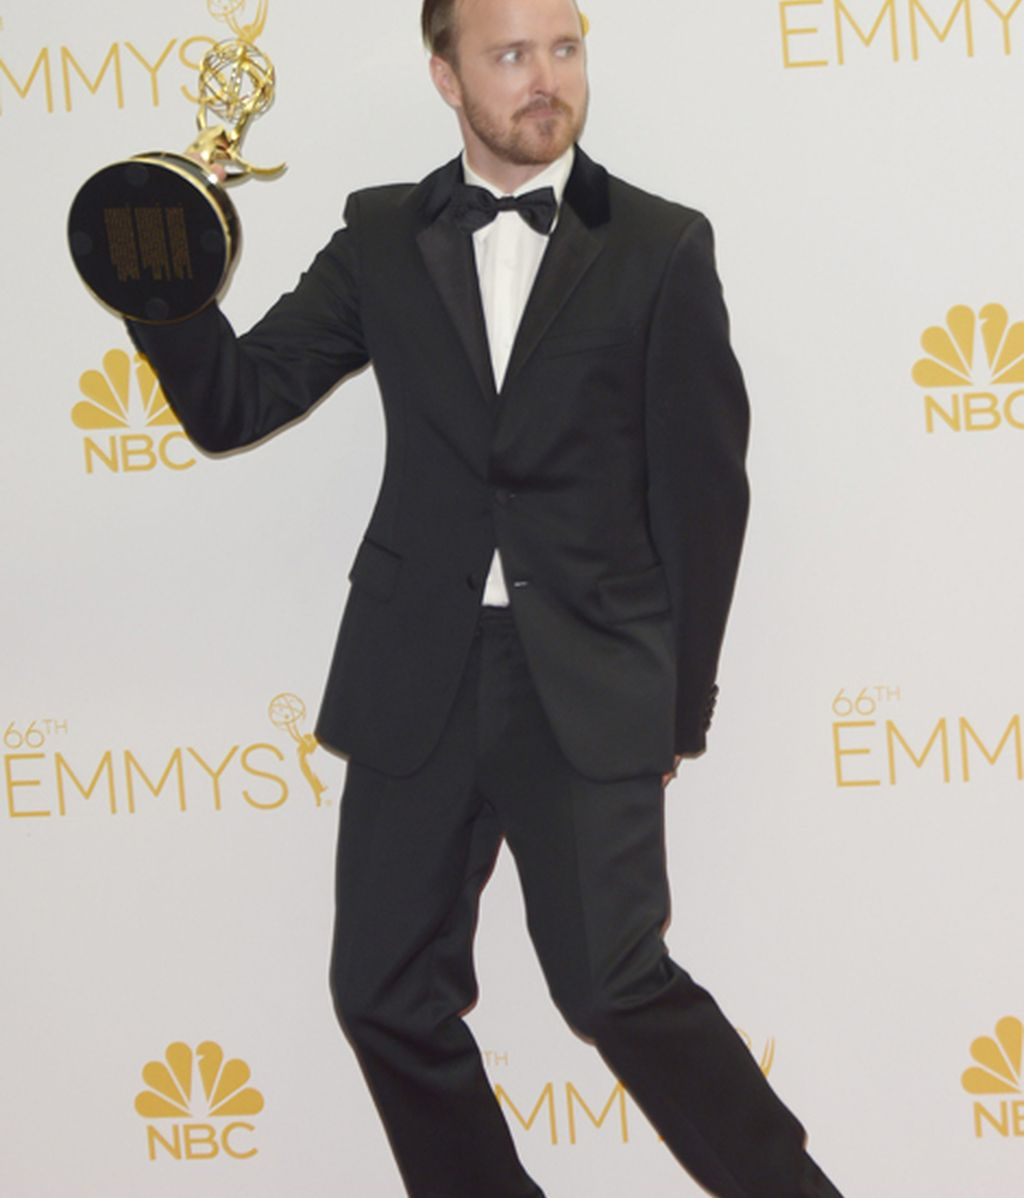 Aaron Paul, mejor actor de reparto en drama por 'Breaking bad'